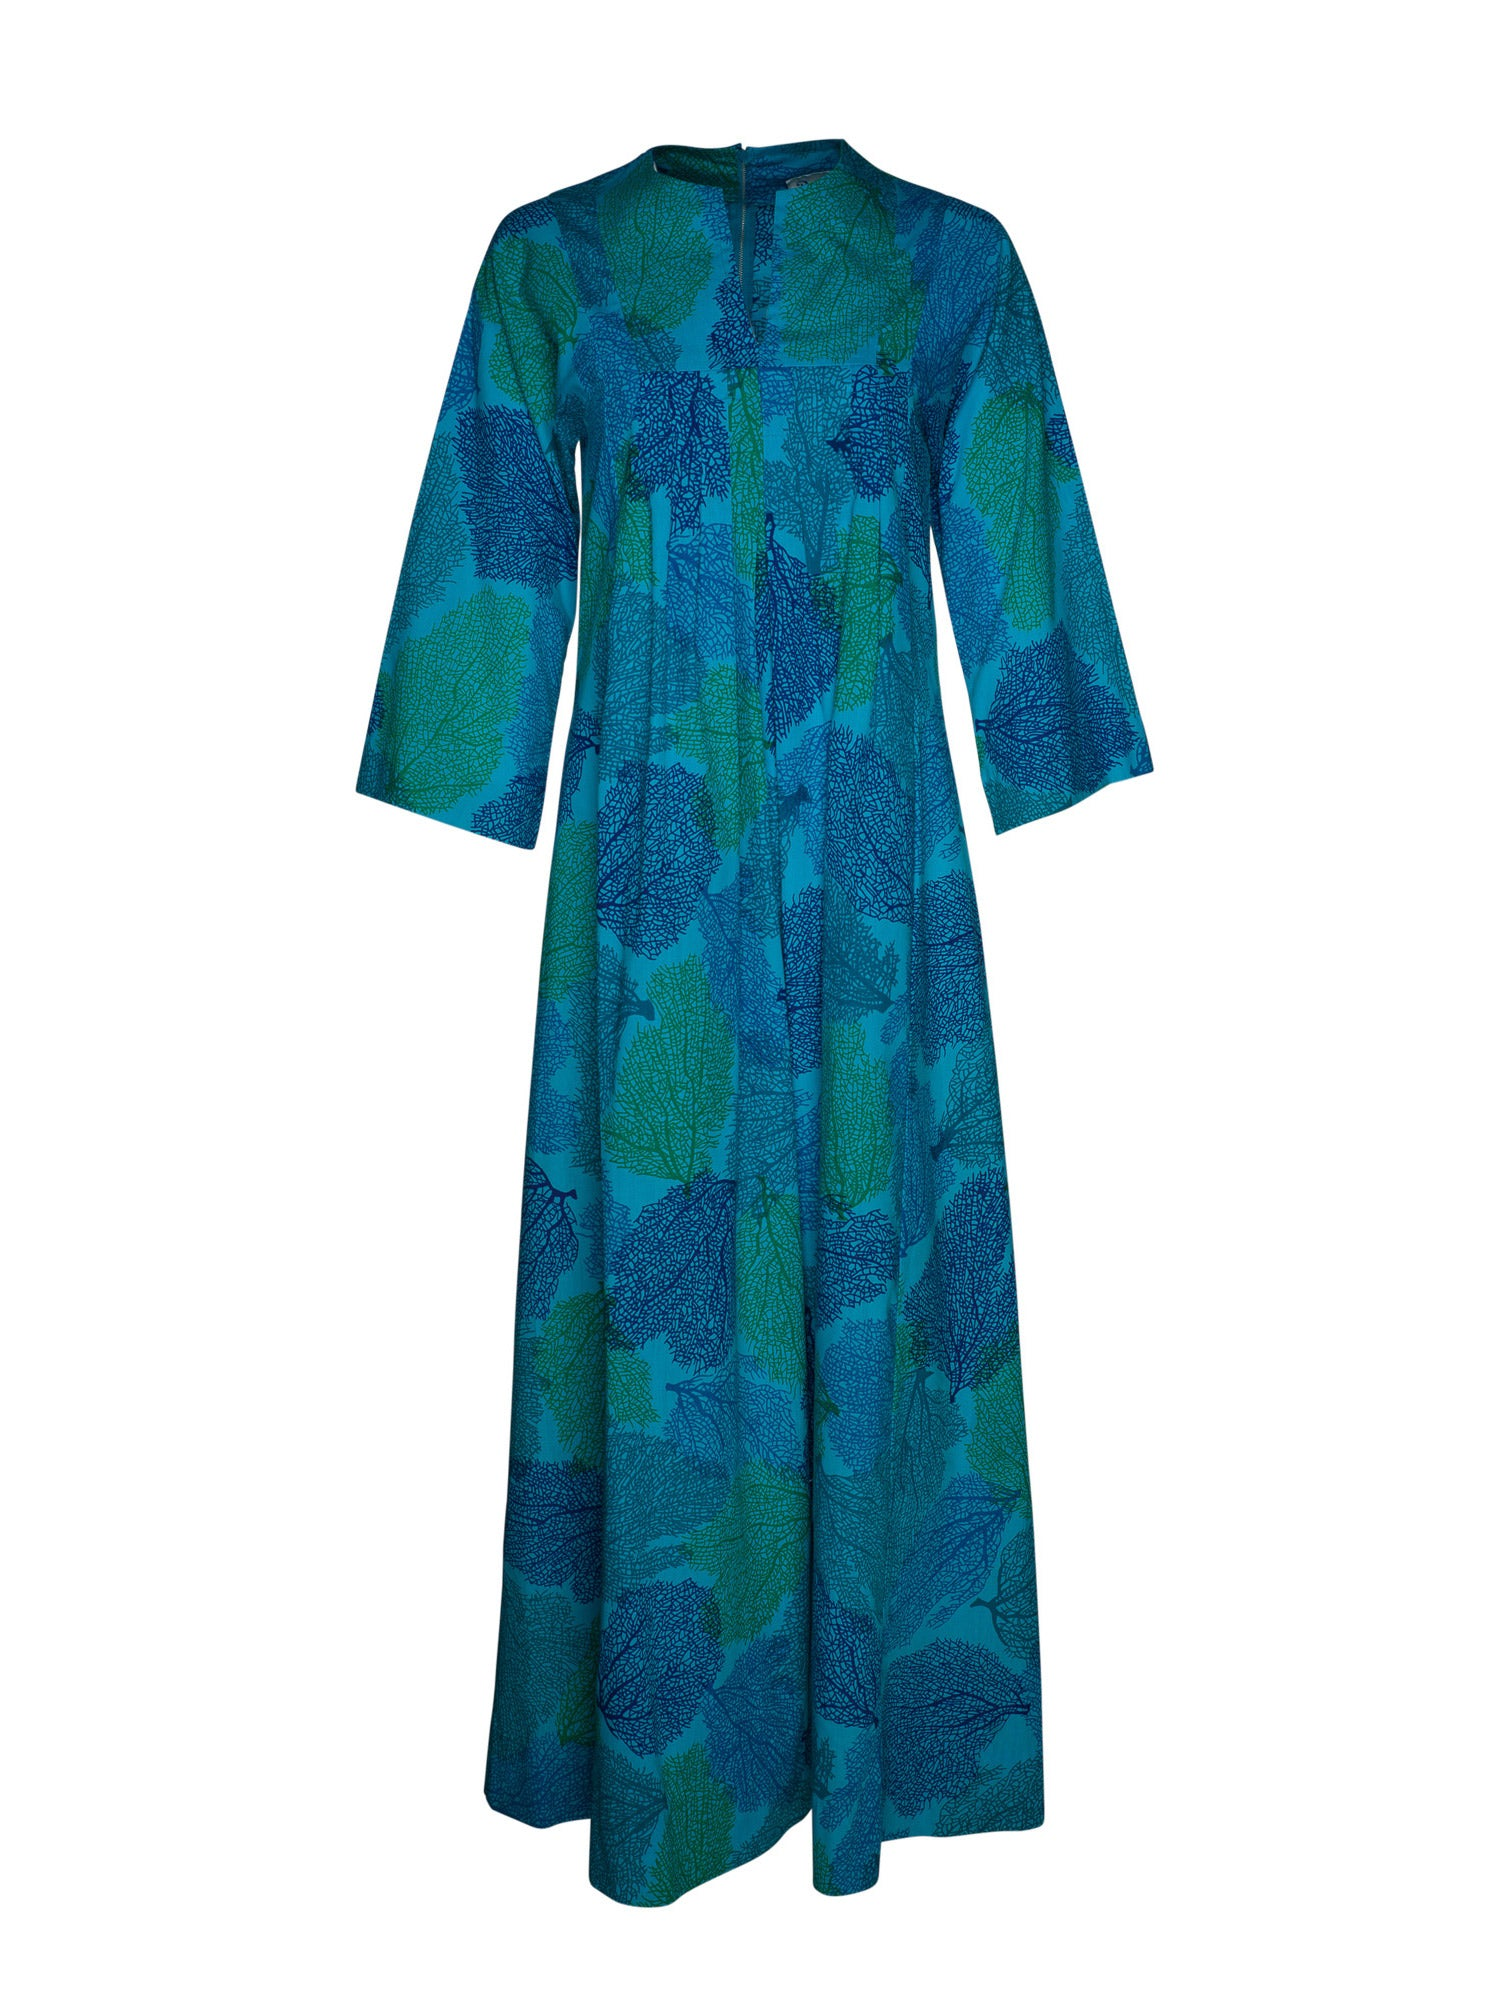 Cabana Vintage Sea Fan Dress